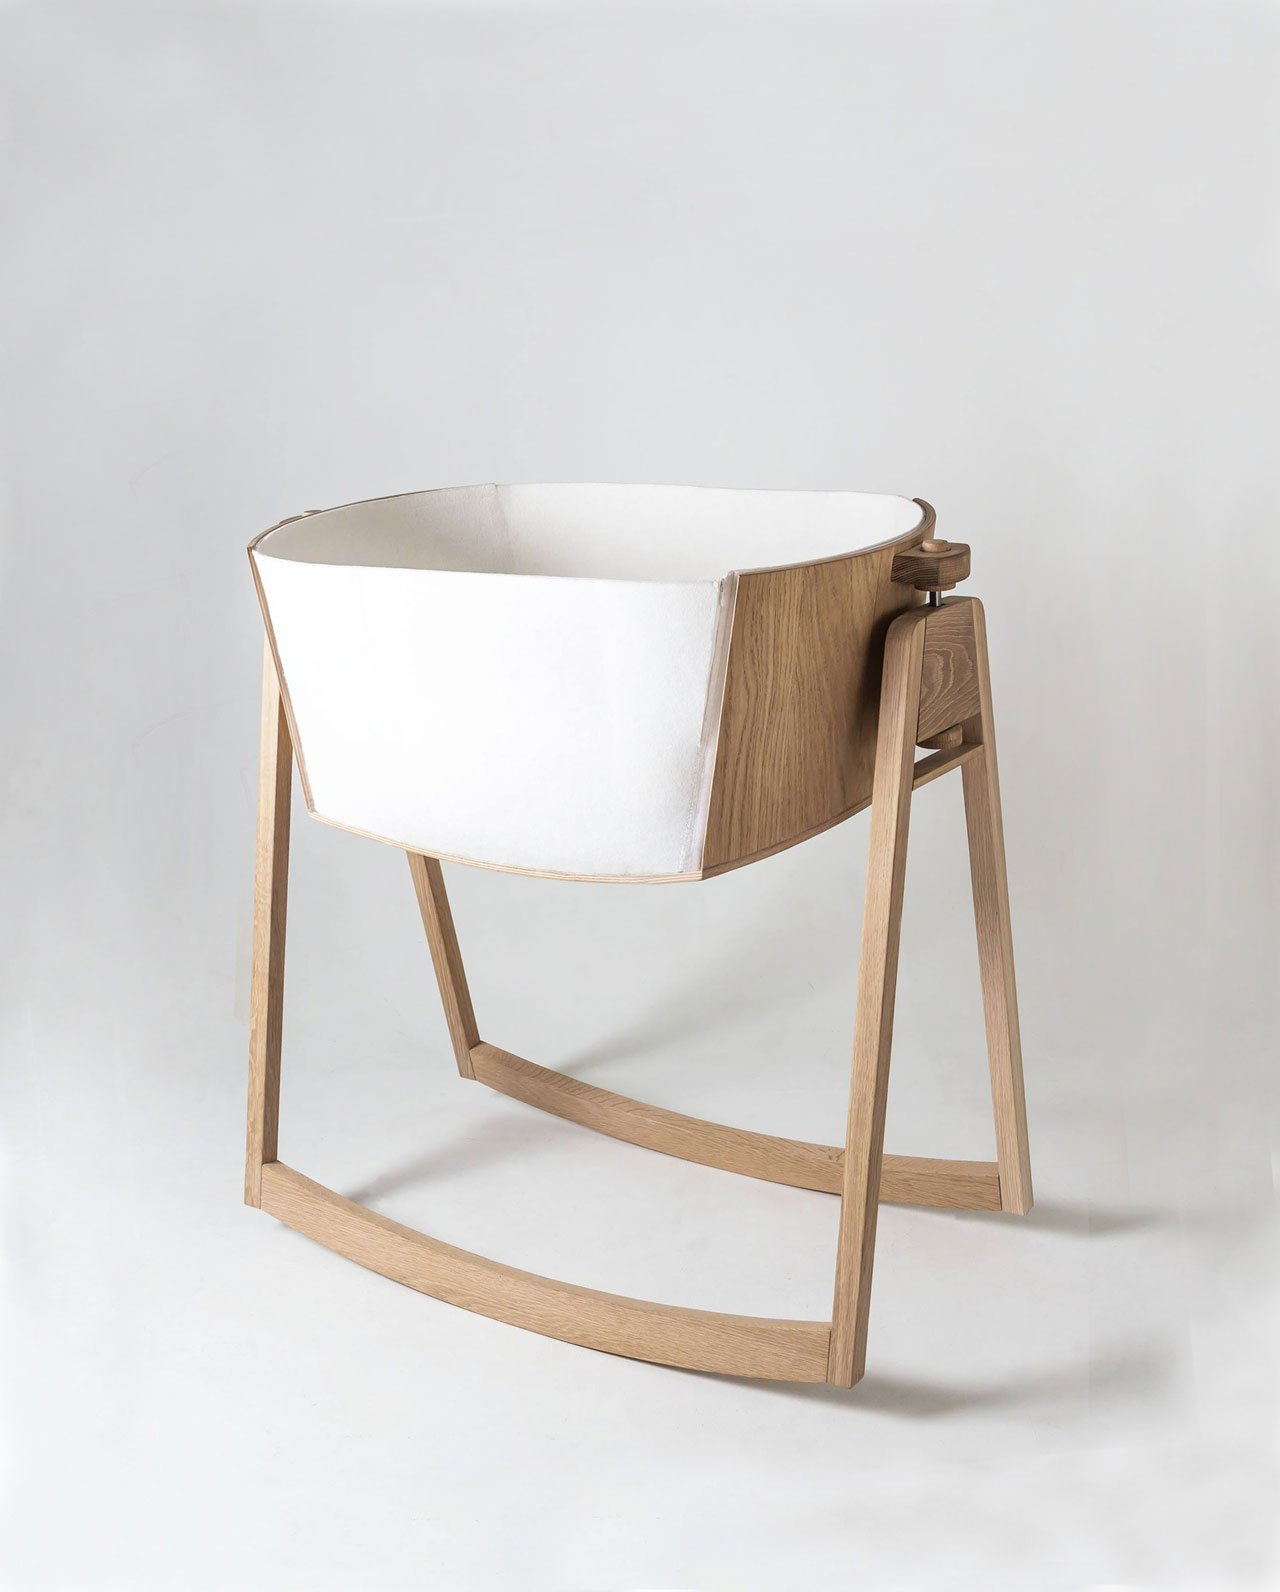 LUNI baby cradle by Anniken Frich, Erik Harmens & Izelin Tujunen. Presented at the Greenhouse of SFF2016 by the students of Product design at Oslo and Akershus University College of applied sciences.